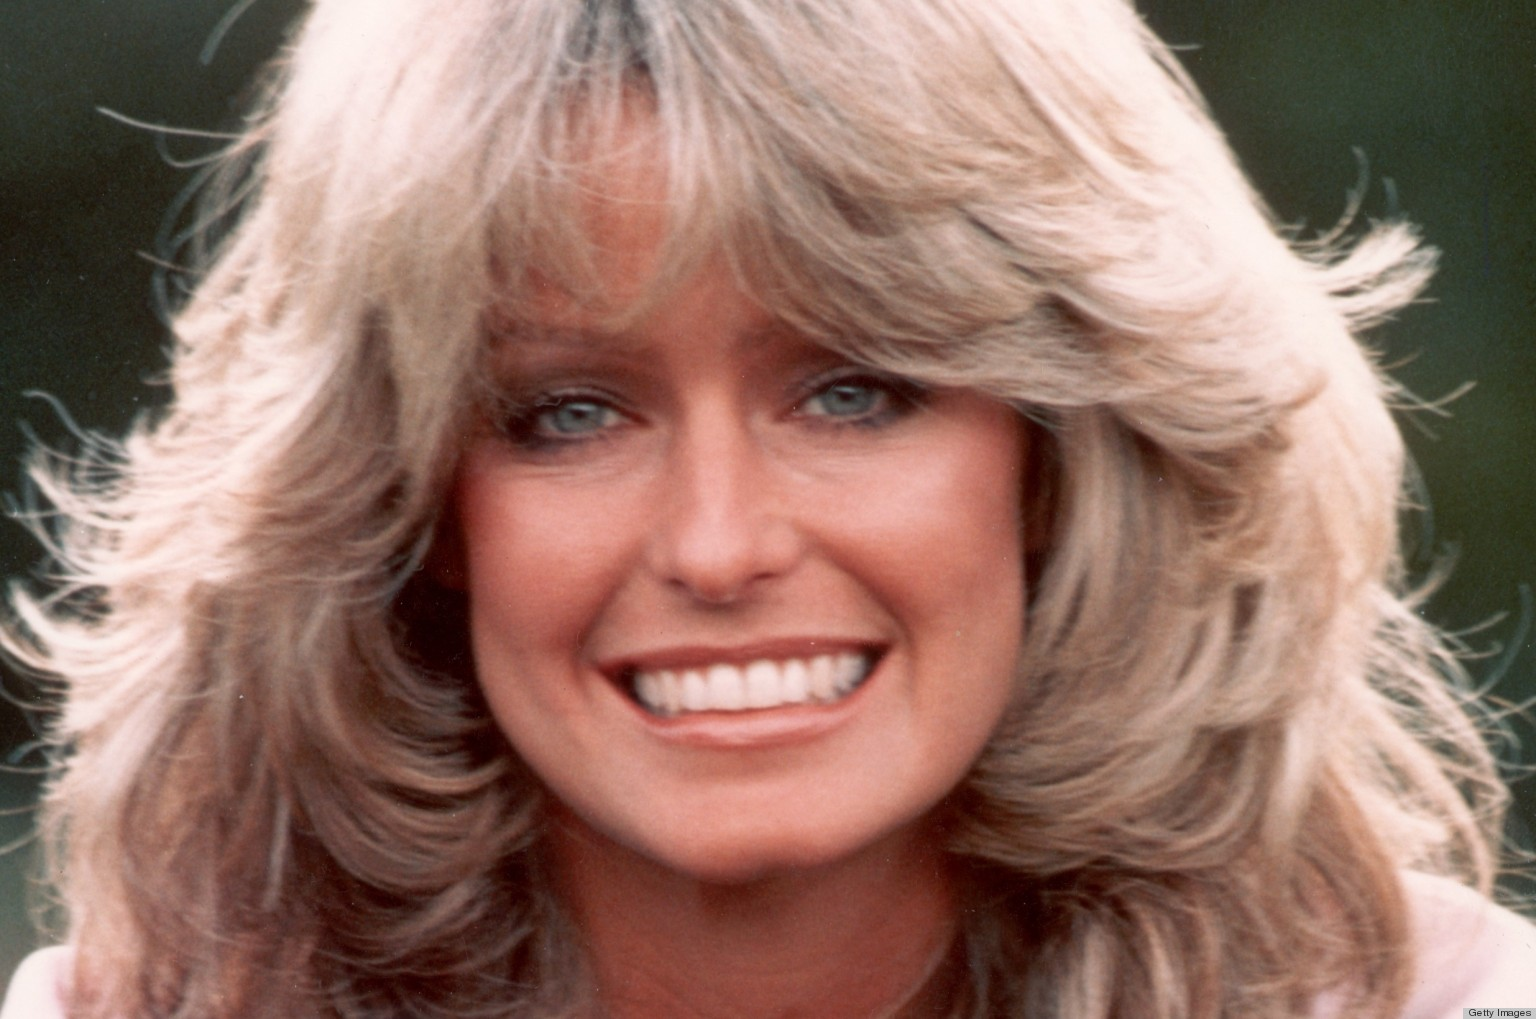 farrah fawcett deathfarrah fawcett hair, farrah fawcett hair lyrics, farrah fawcett poster, farrah fawcett parents, farrah fawcett 2009, farrah fawcett and cher, farrah fawcett death, farrah fawcett hair by capital cities, farrah fawcett imdb, farrah fawcett makeup, farrah fawcett 2000, farrah fawcett husband, farrah fawcett signature, farrah fawcett barbie, farrah fawcett young, farrah fawcett hair tutorial, farrah fawcett hair meaning, farrah fawcett skateboard, farrah fawcett barbie ebay, farrah fawcett interview